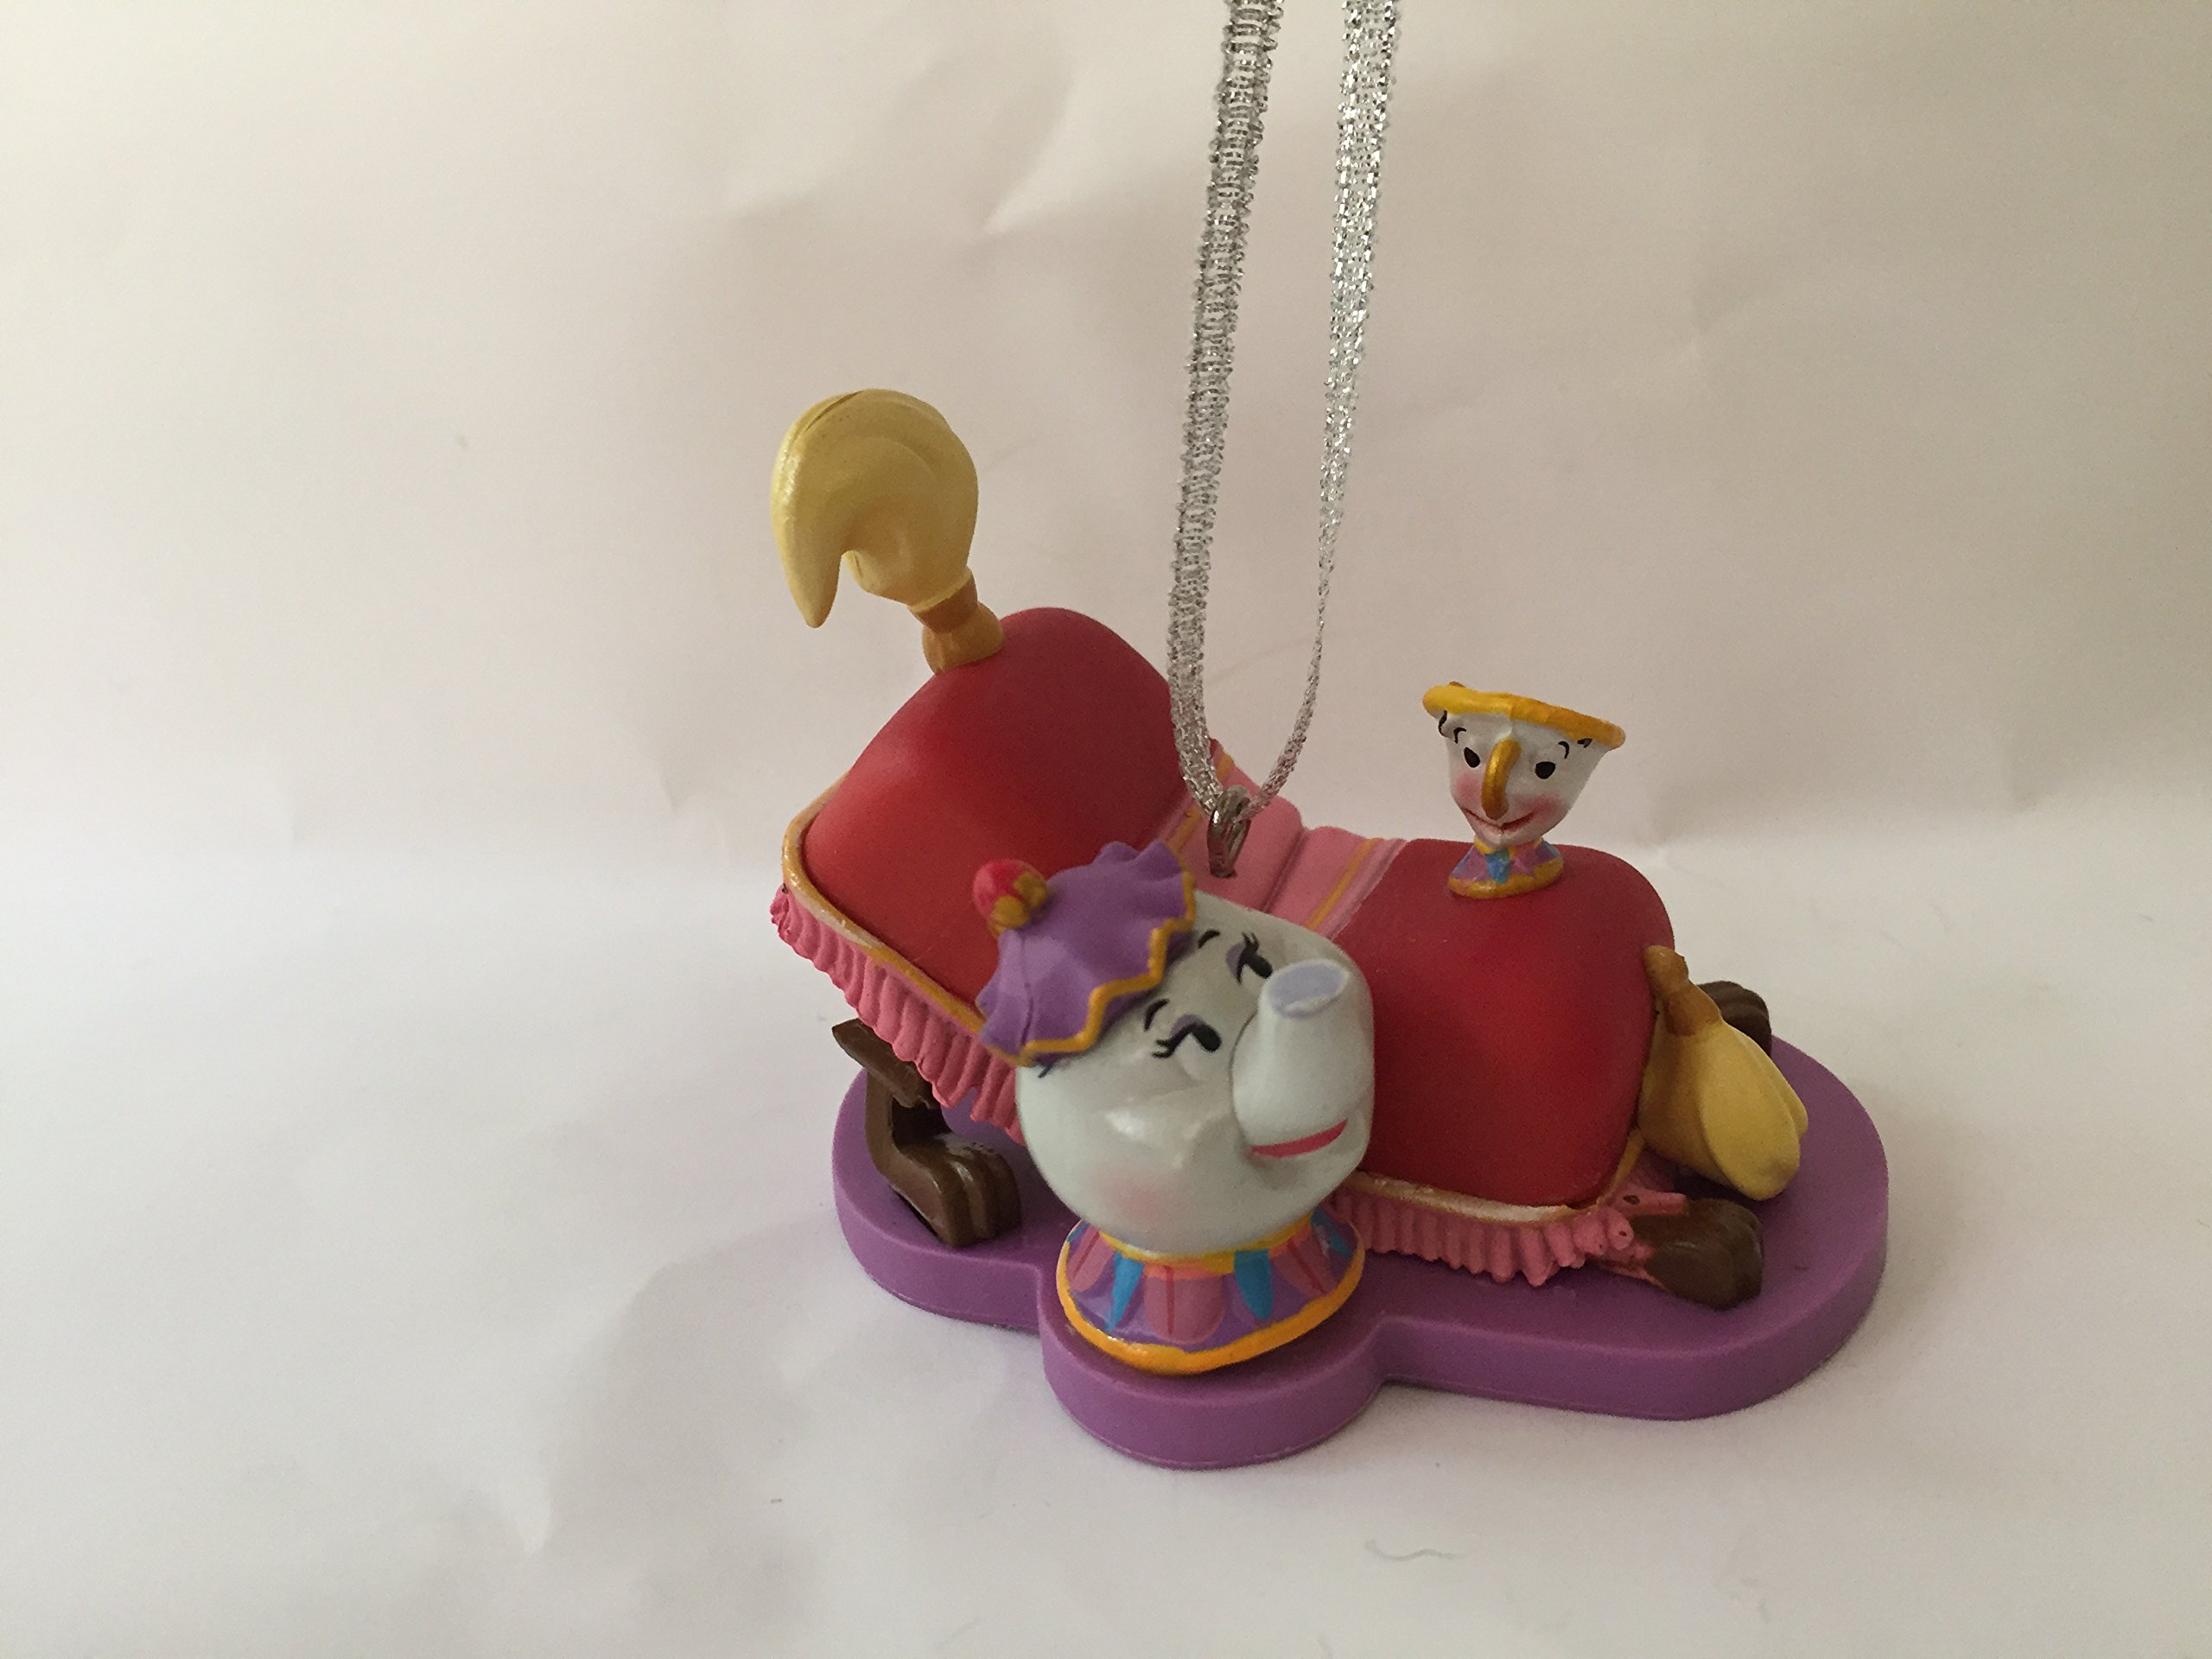 Disney Beauty and the Beast Sultan Foot Stool Footstool Babette Feather Duster Mrs Potts & Chip 2.5'' X 1.5'' Pvc Figure Holiday Christmas Ornament Toy